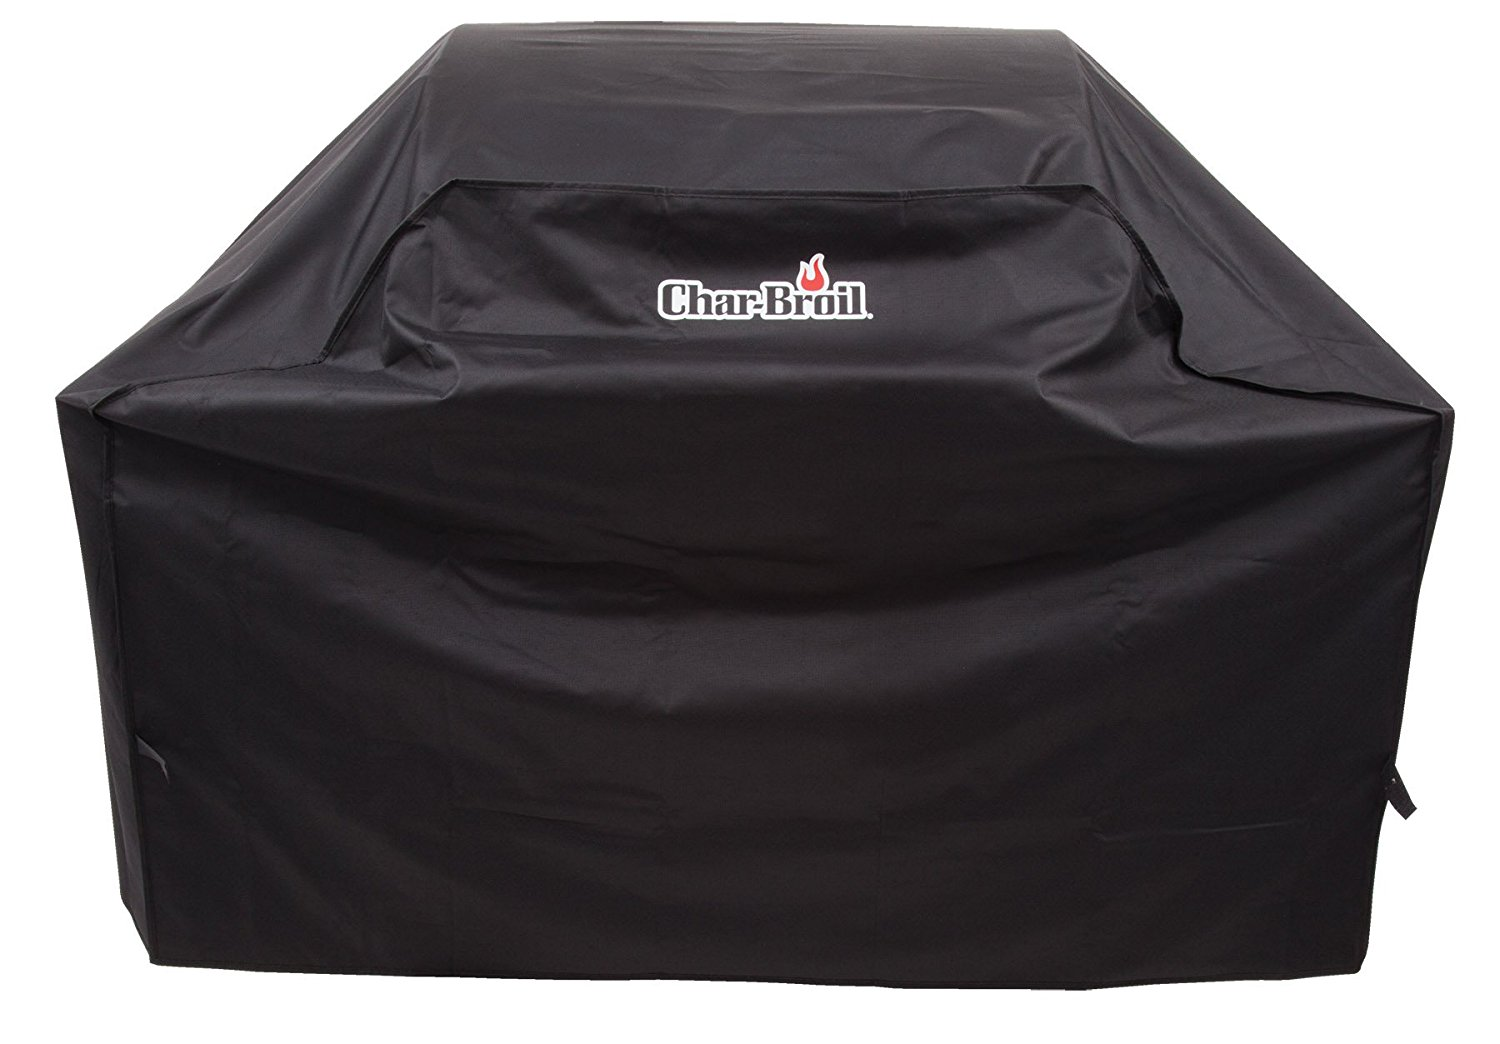 Char-Broil Burner All-Season Grill Cover